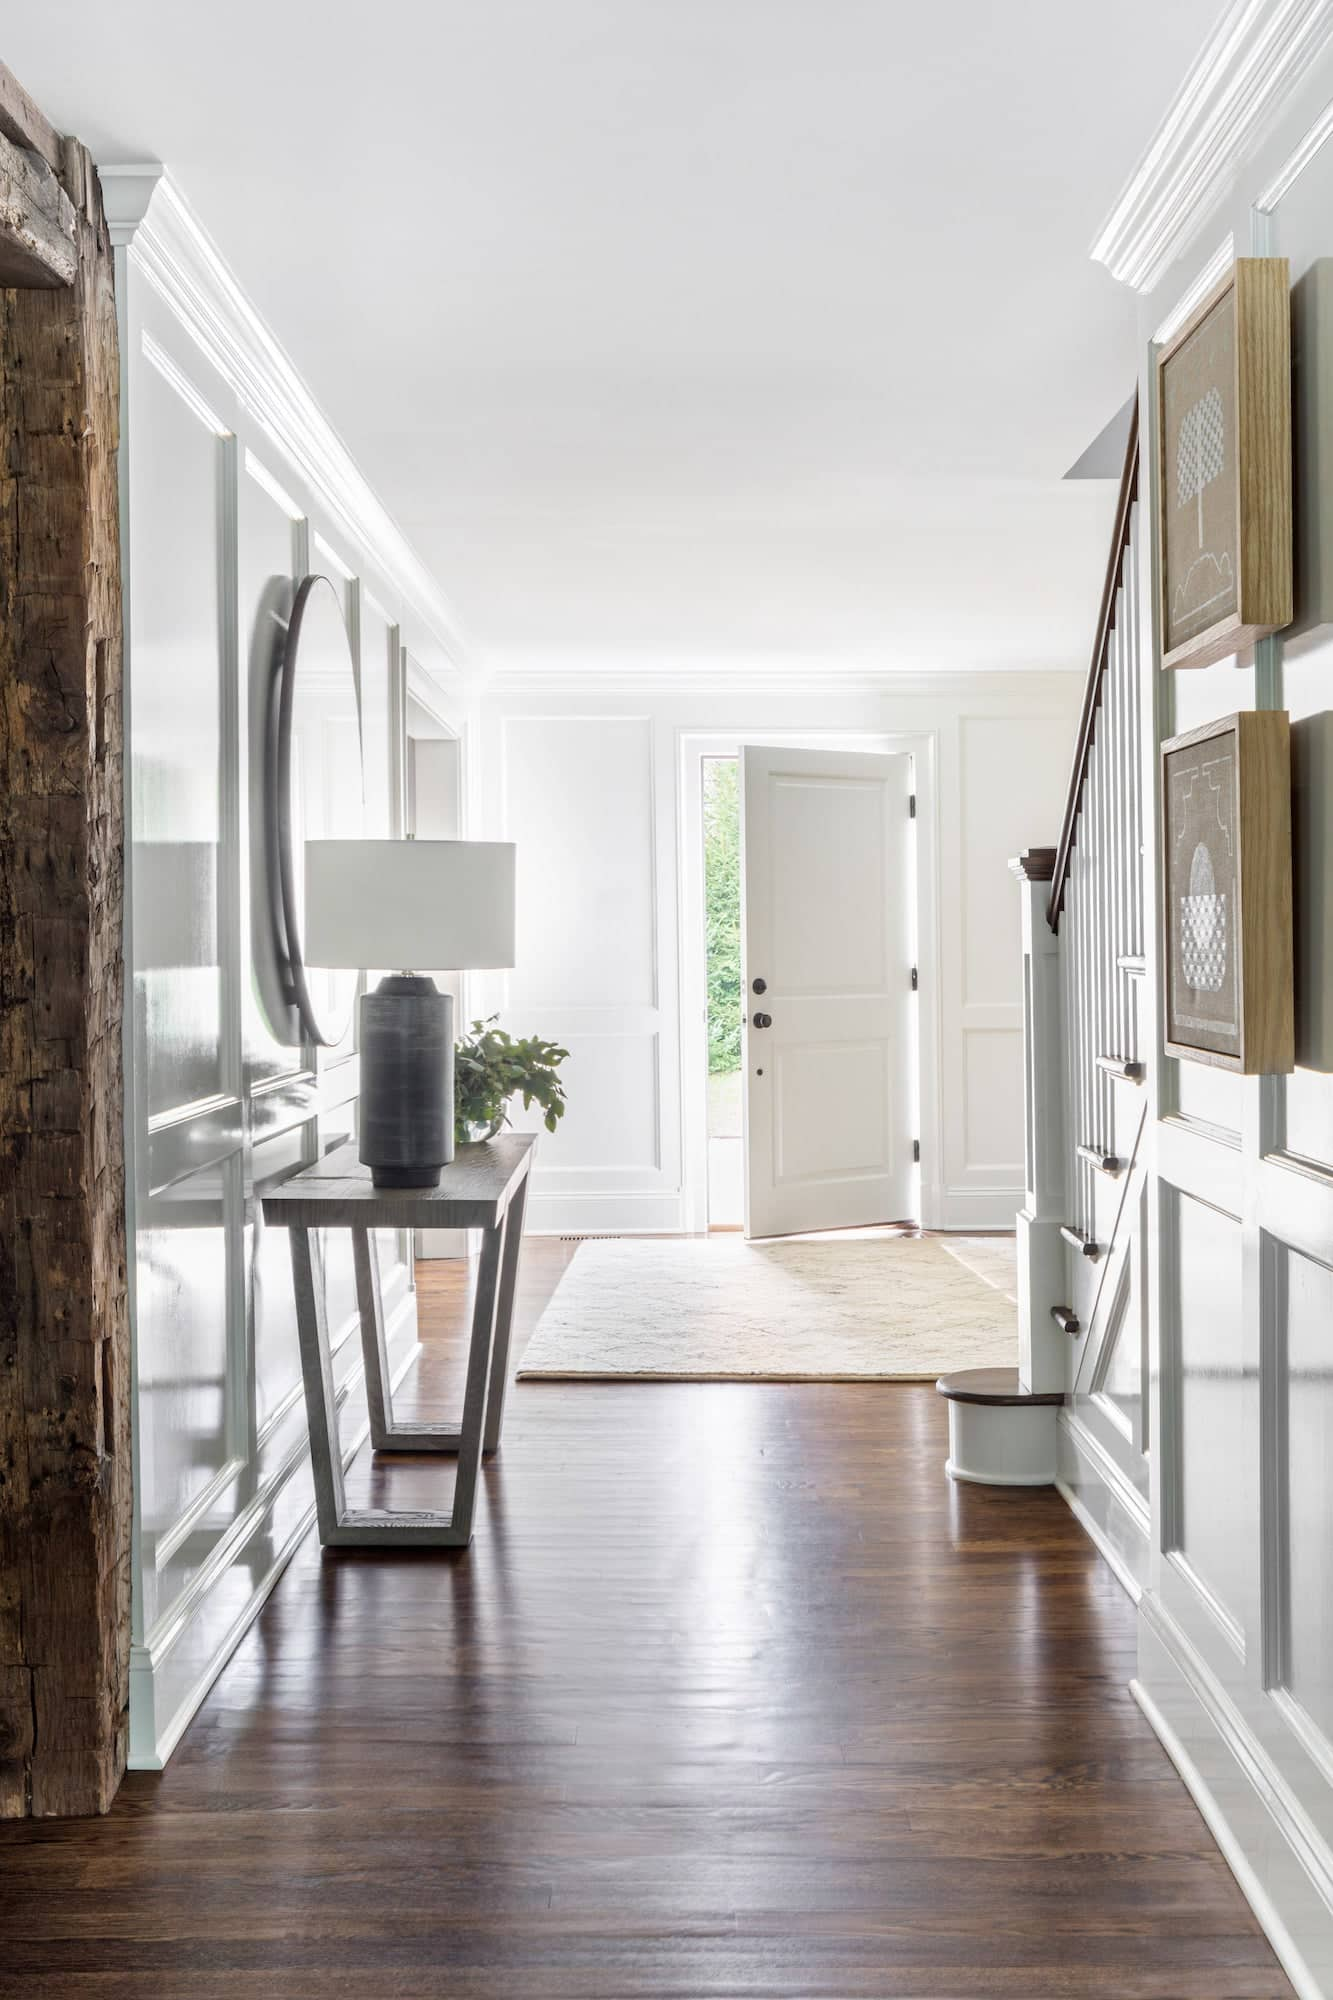 Westport, CT home by Chango & Co.